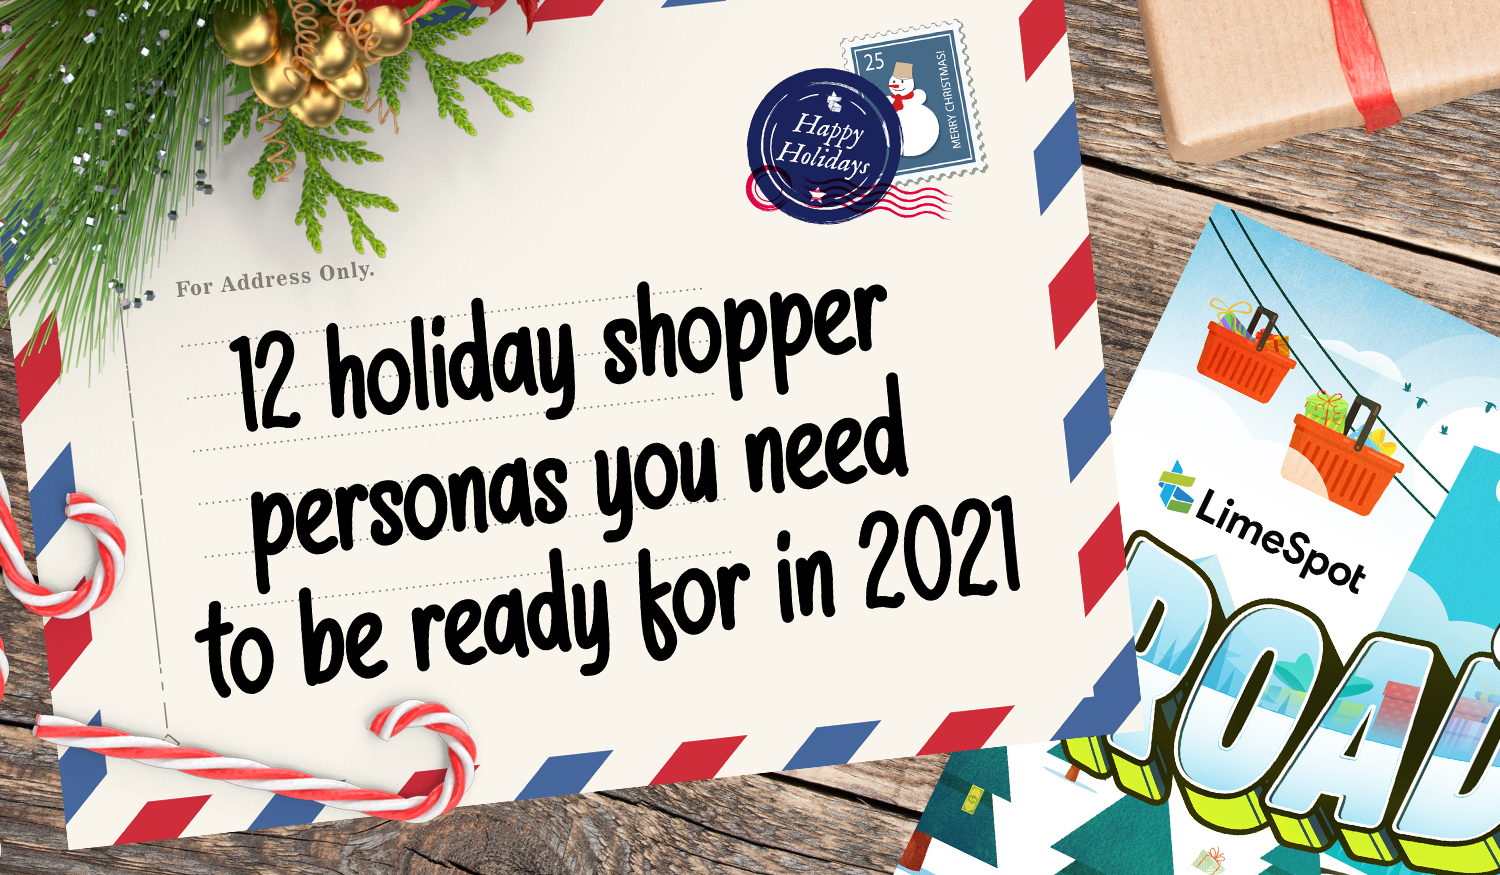 12 holiday shopper personas you need to be ready for in 2021 1500x875px